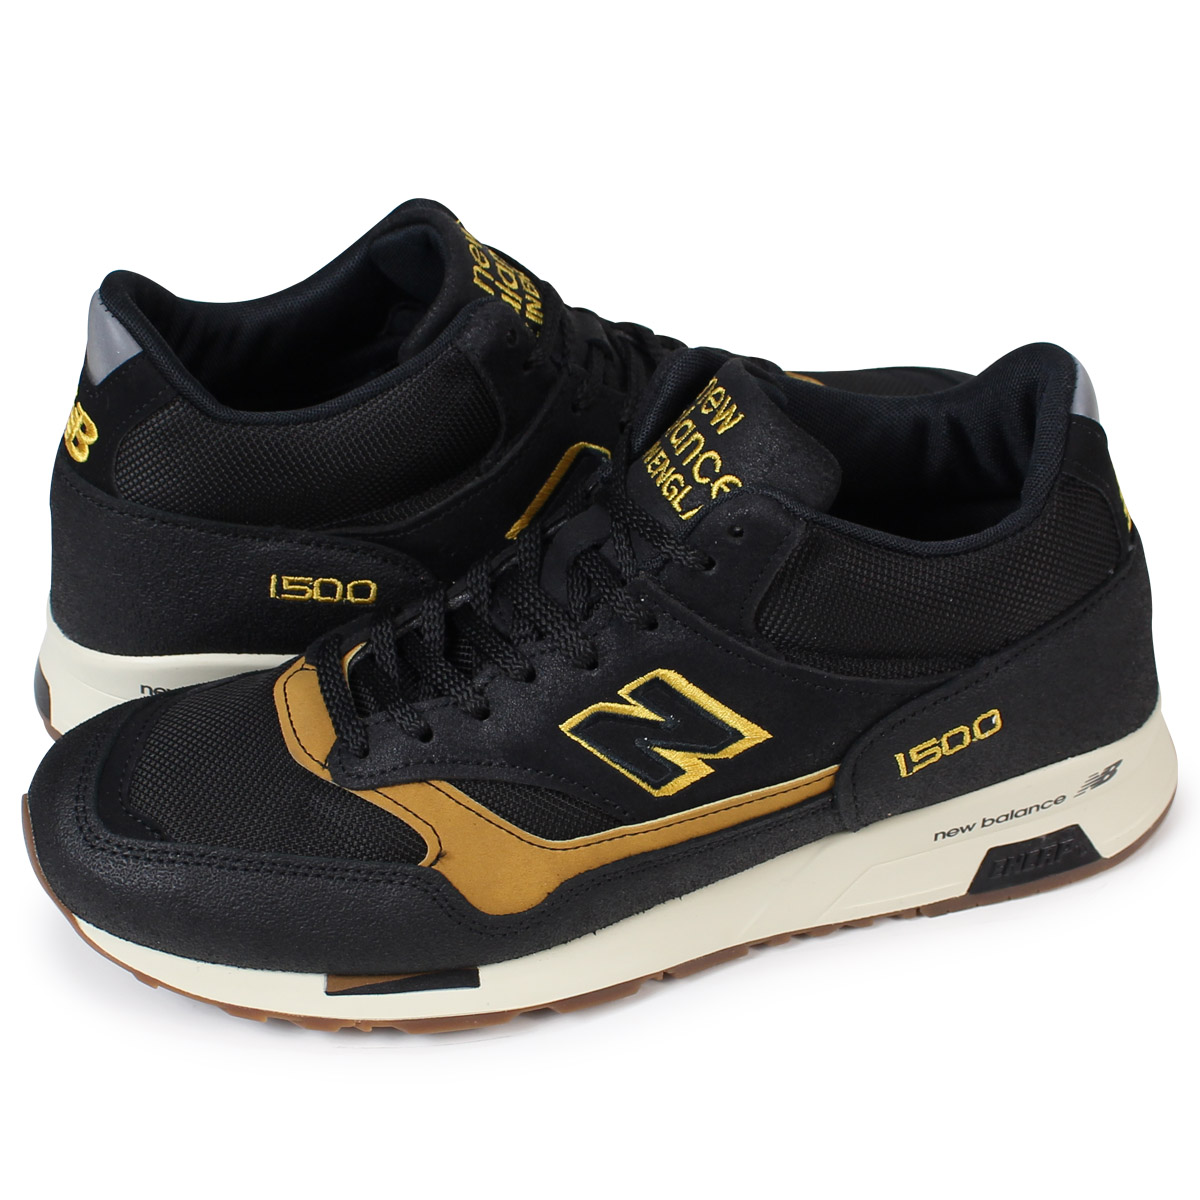 new balance 1500 made in new zealand nz